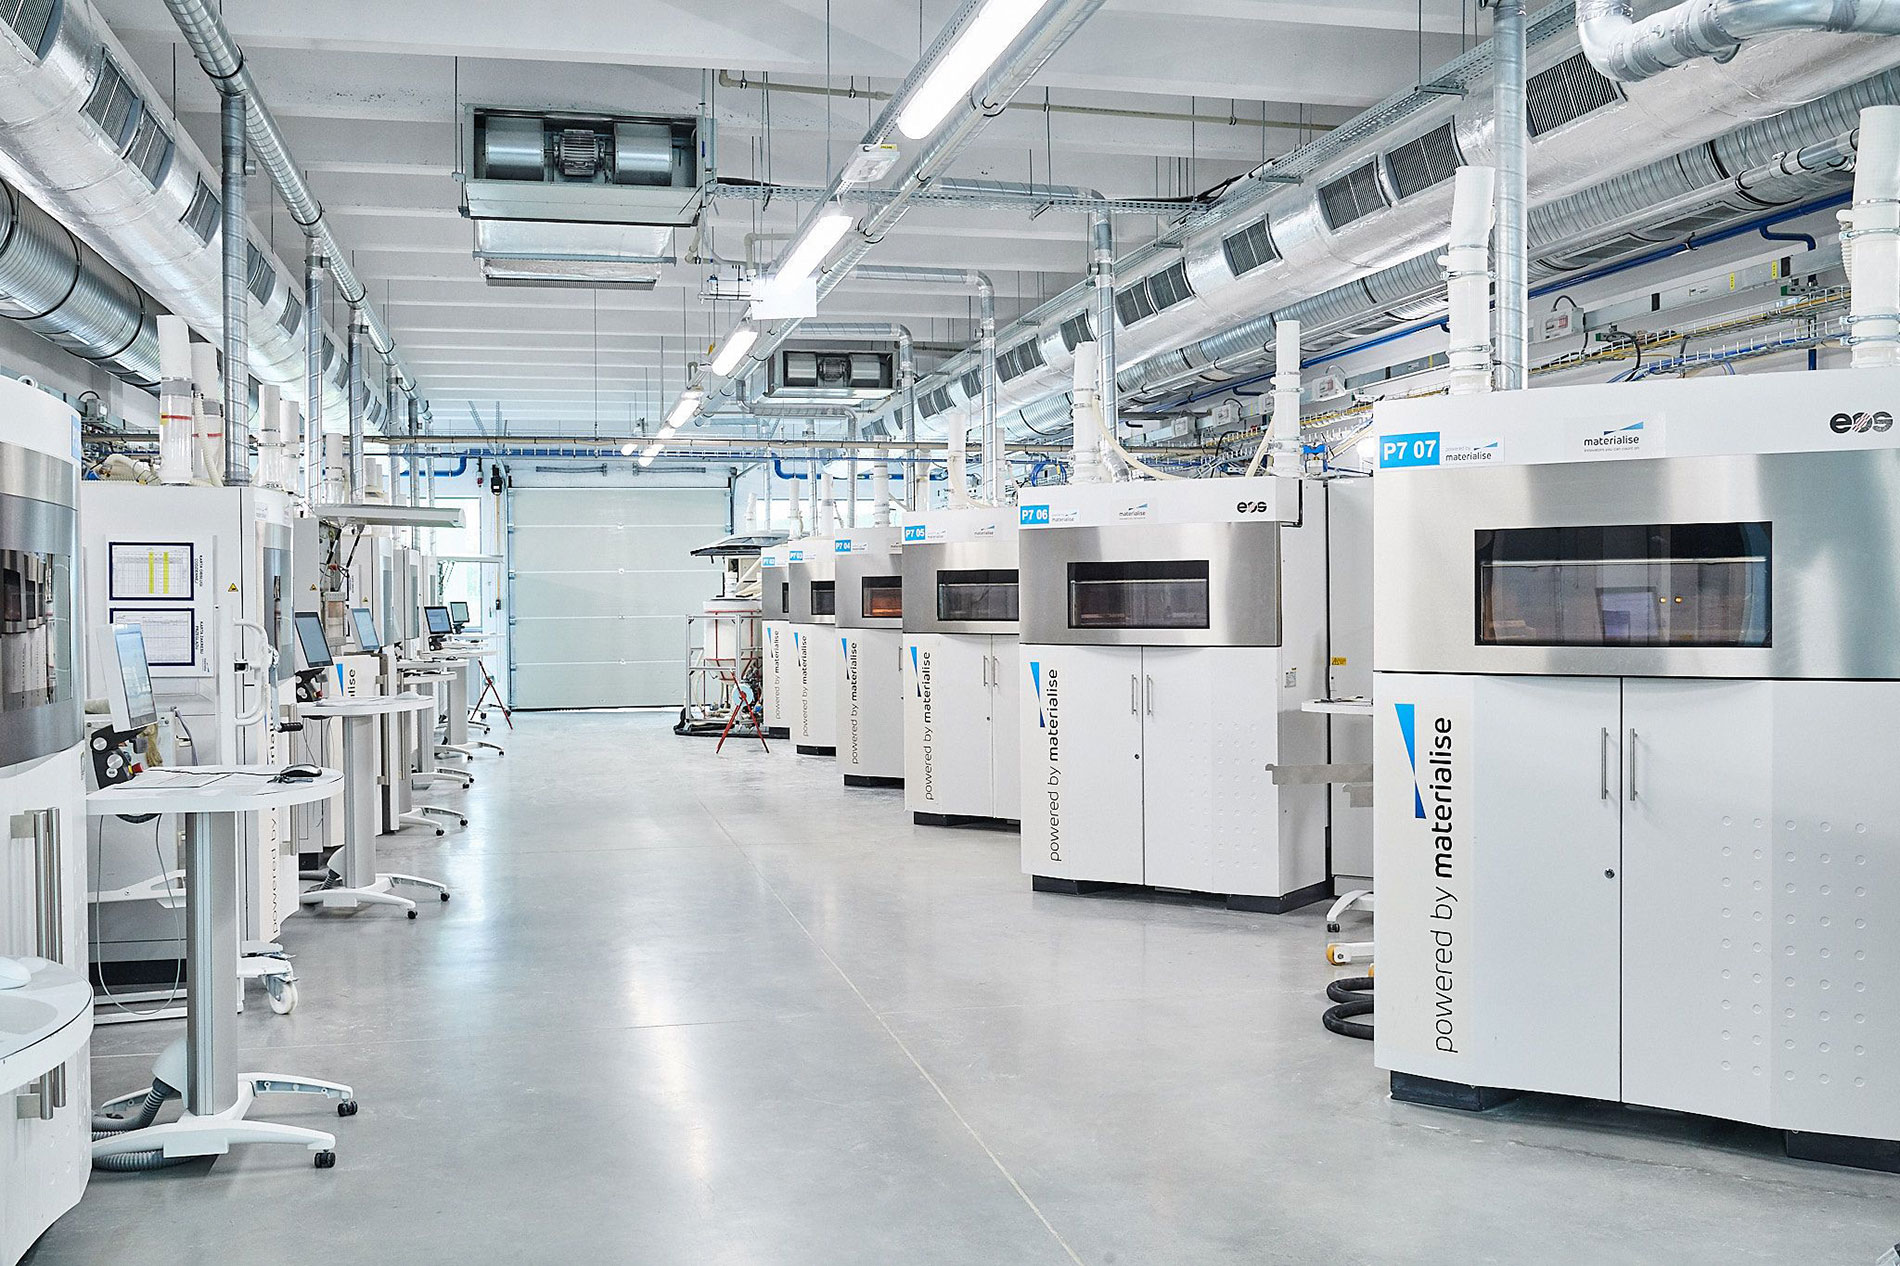 Materialise 3D printing facility